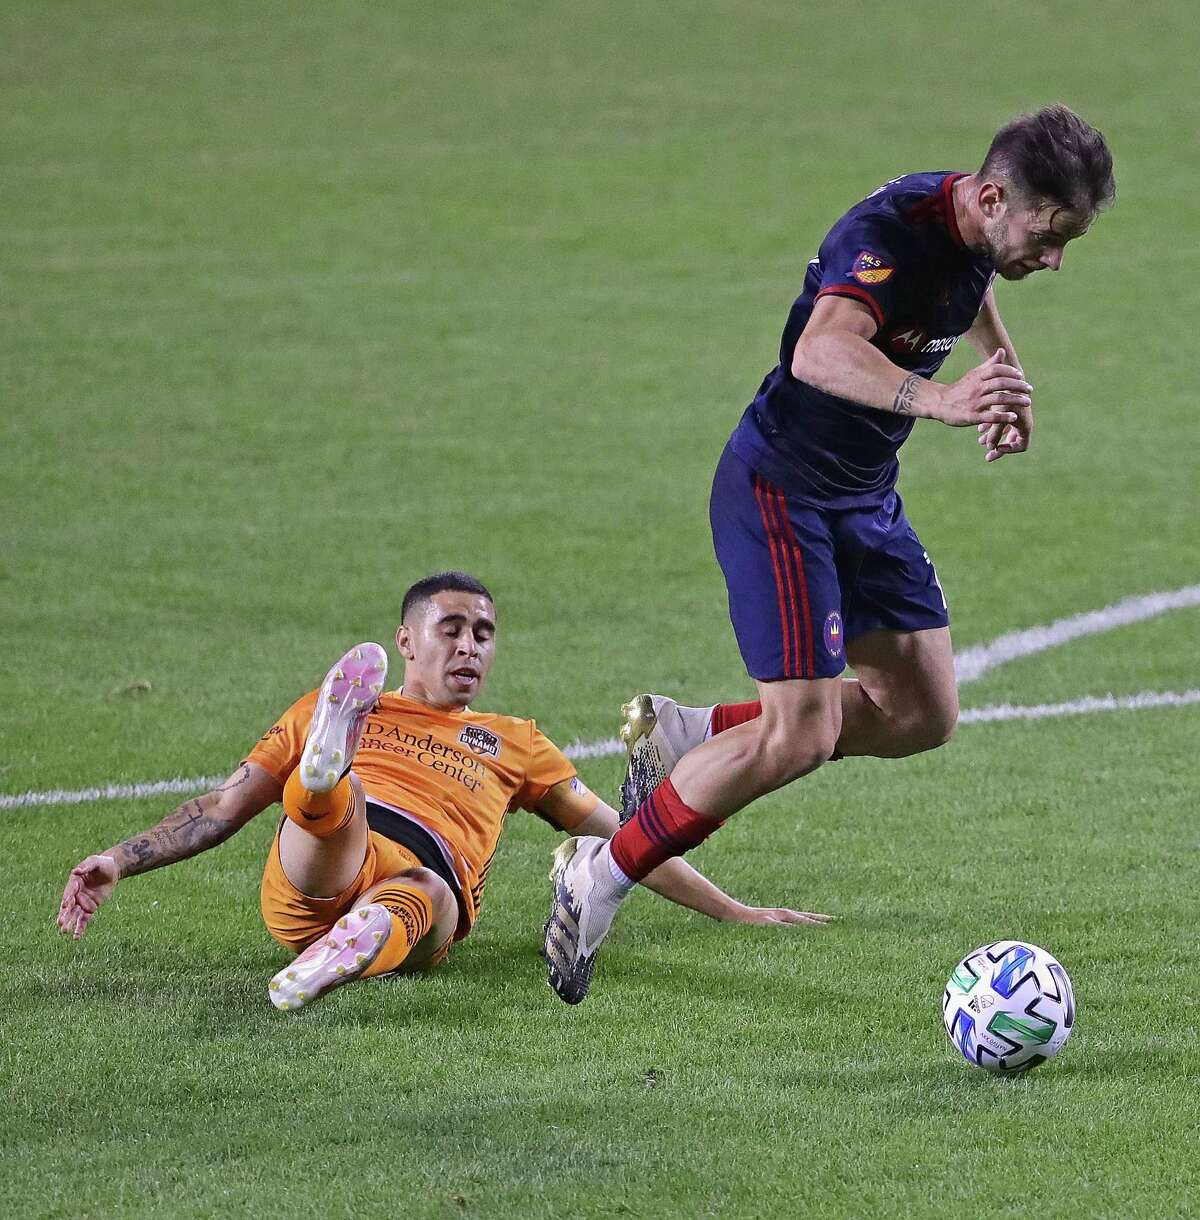 CHICAGO, ILLINOIS - SEPTEMBER 23: Alvaro Medran #10 of Chicago Fire FC gets over Matias Vera #22 of Houston Dynamo on his way to scoring a goal at Soldier Field on September 23, 2020 in Chicago, Illinois.